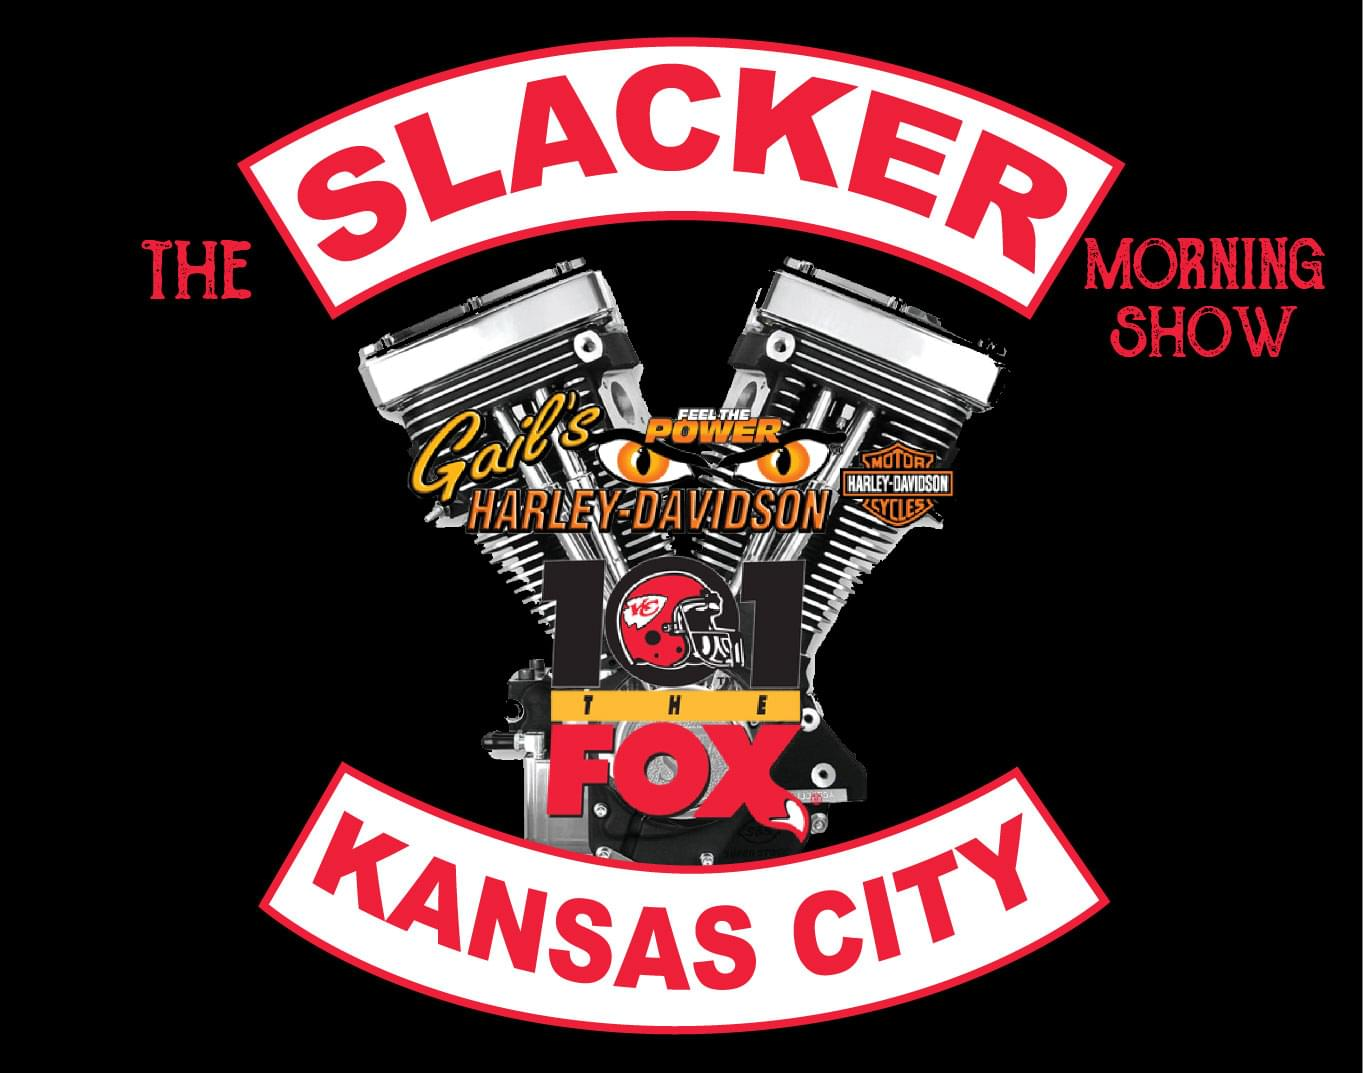 LISTEN TO SLACKER every Thursday morning for the RIDE REPORT with Gail from Gail's Harley-Davidson!